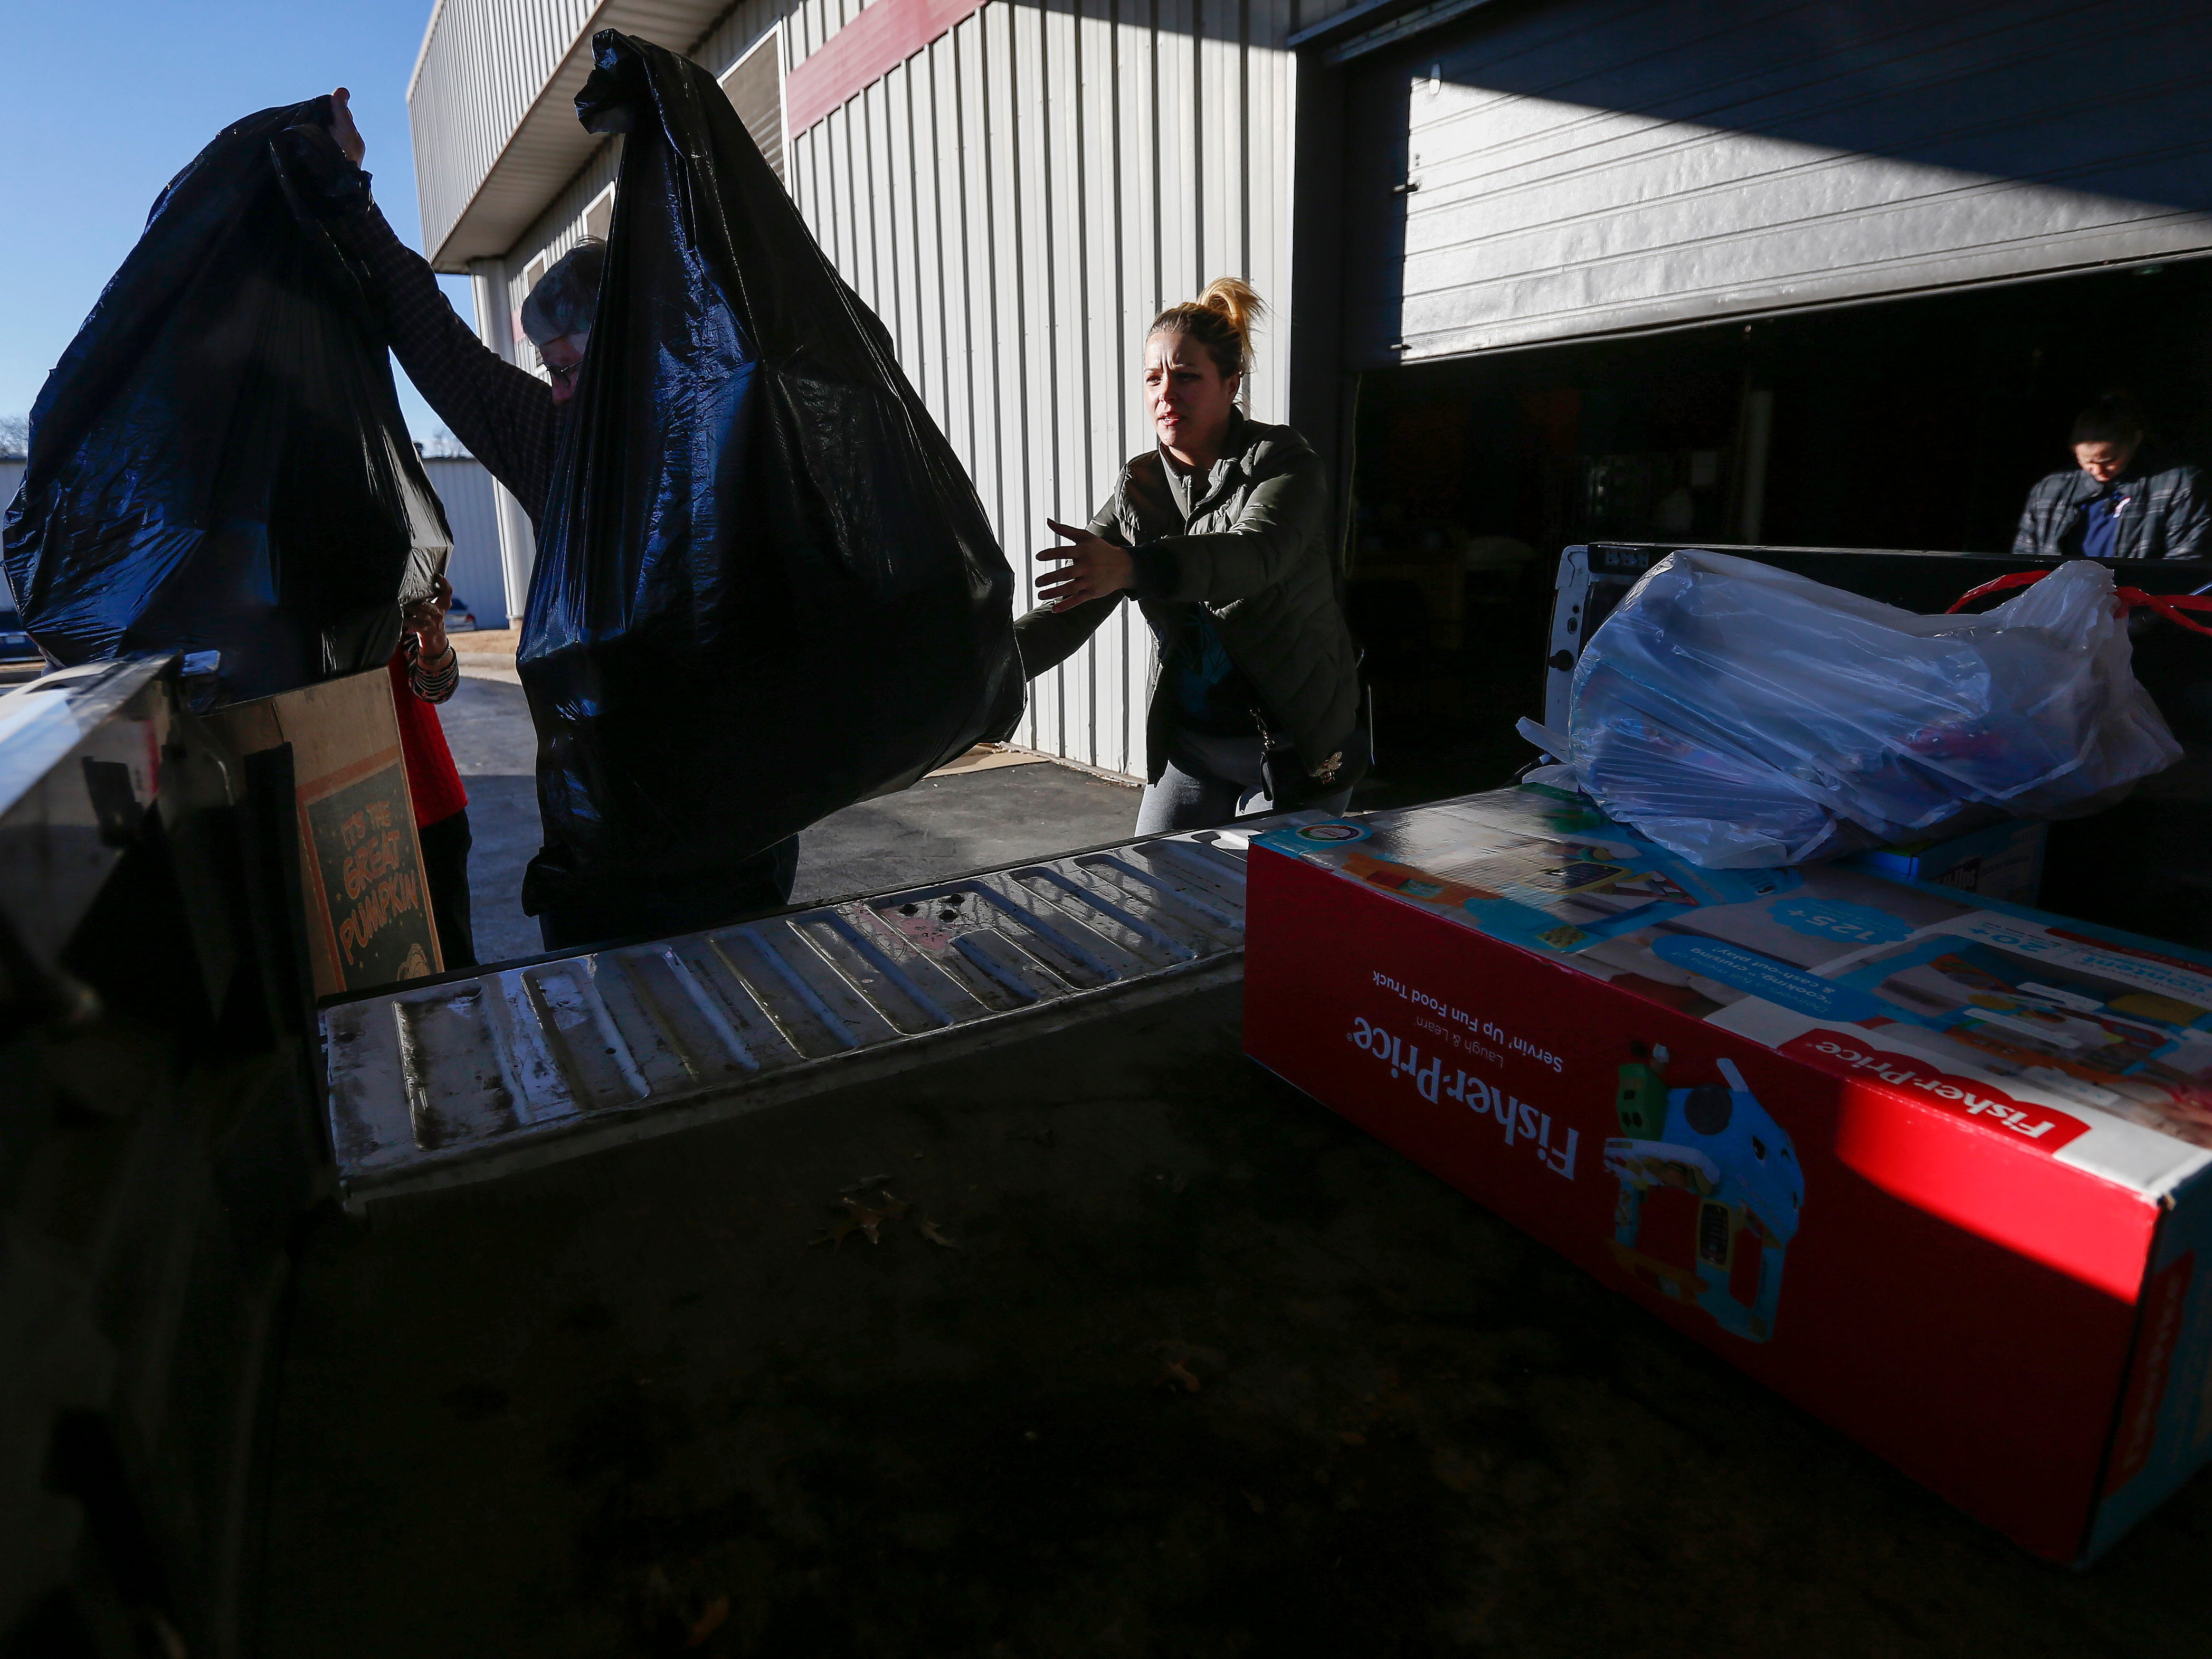 Heather Amundson, right, helps Ron Wachter load gifts into her truck during the Share Your Christmas distribution at Crosslines on Tuesday, Dec. 18, 2018. Amundson was receiving gifts for 2 girls, ages 4 and 3, as well as a 2-year-old boy.